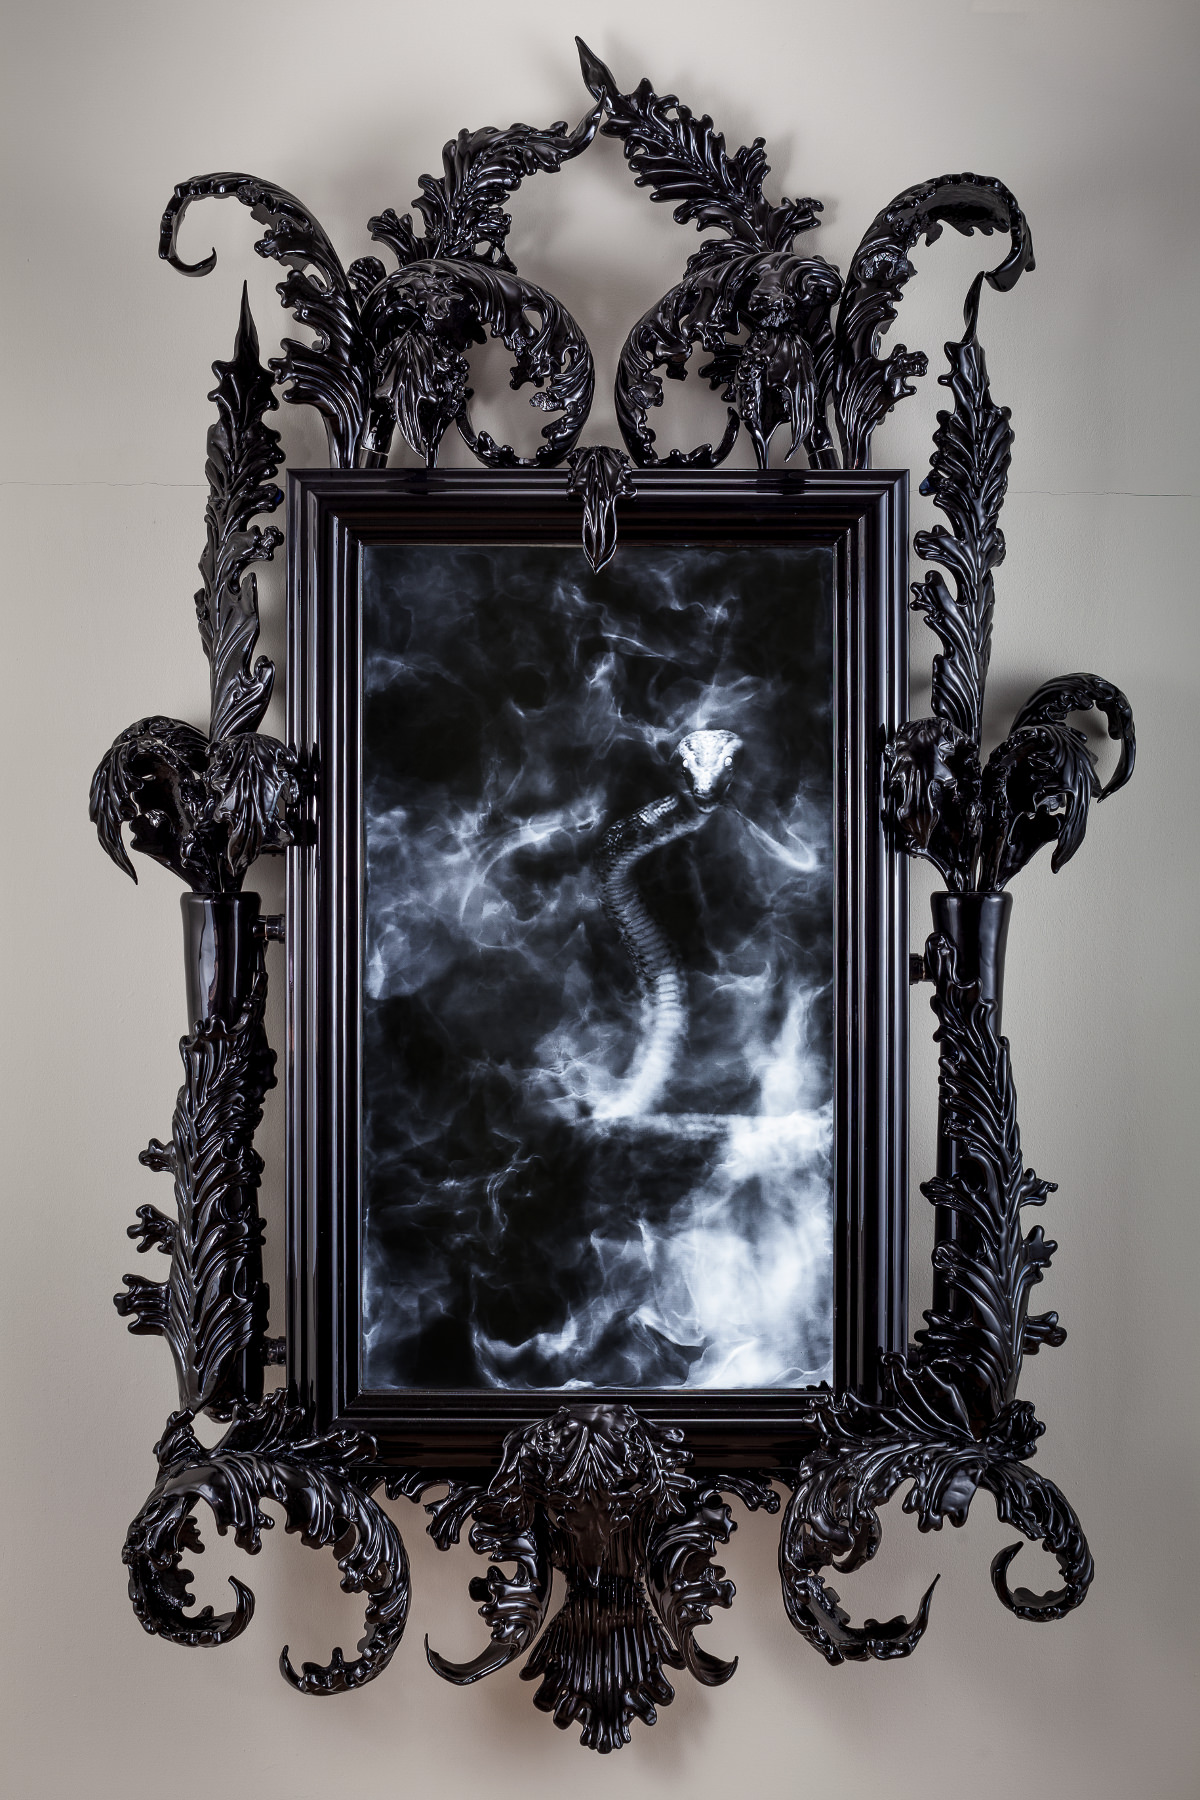 Mat Collishaw - East of Eden